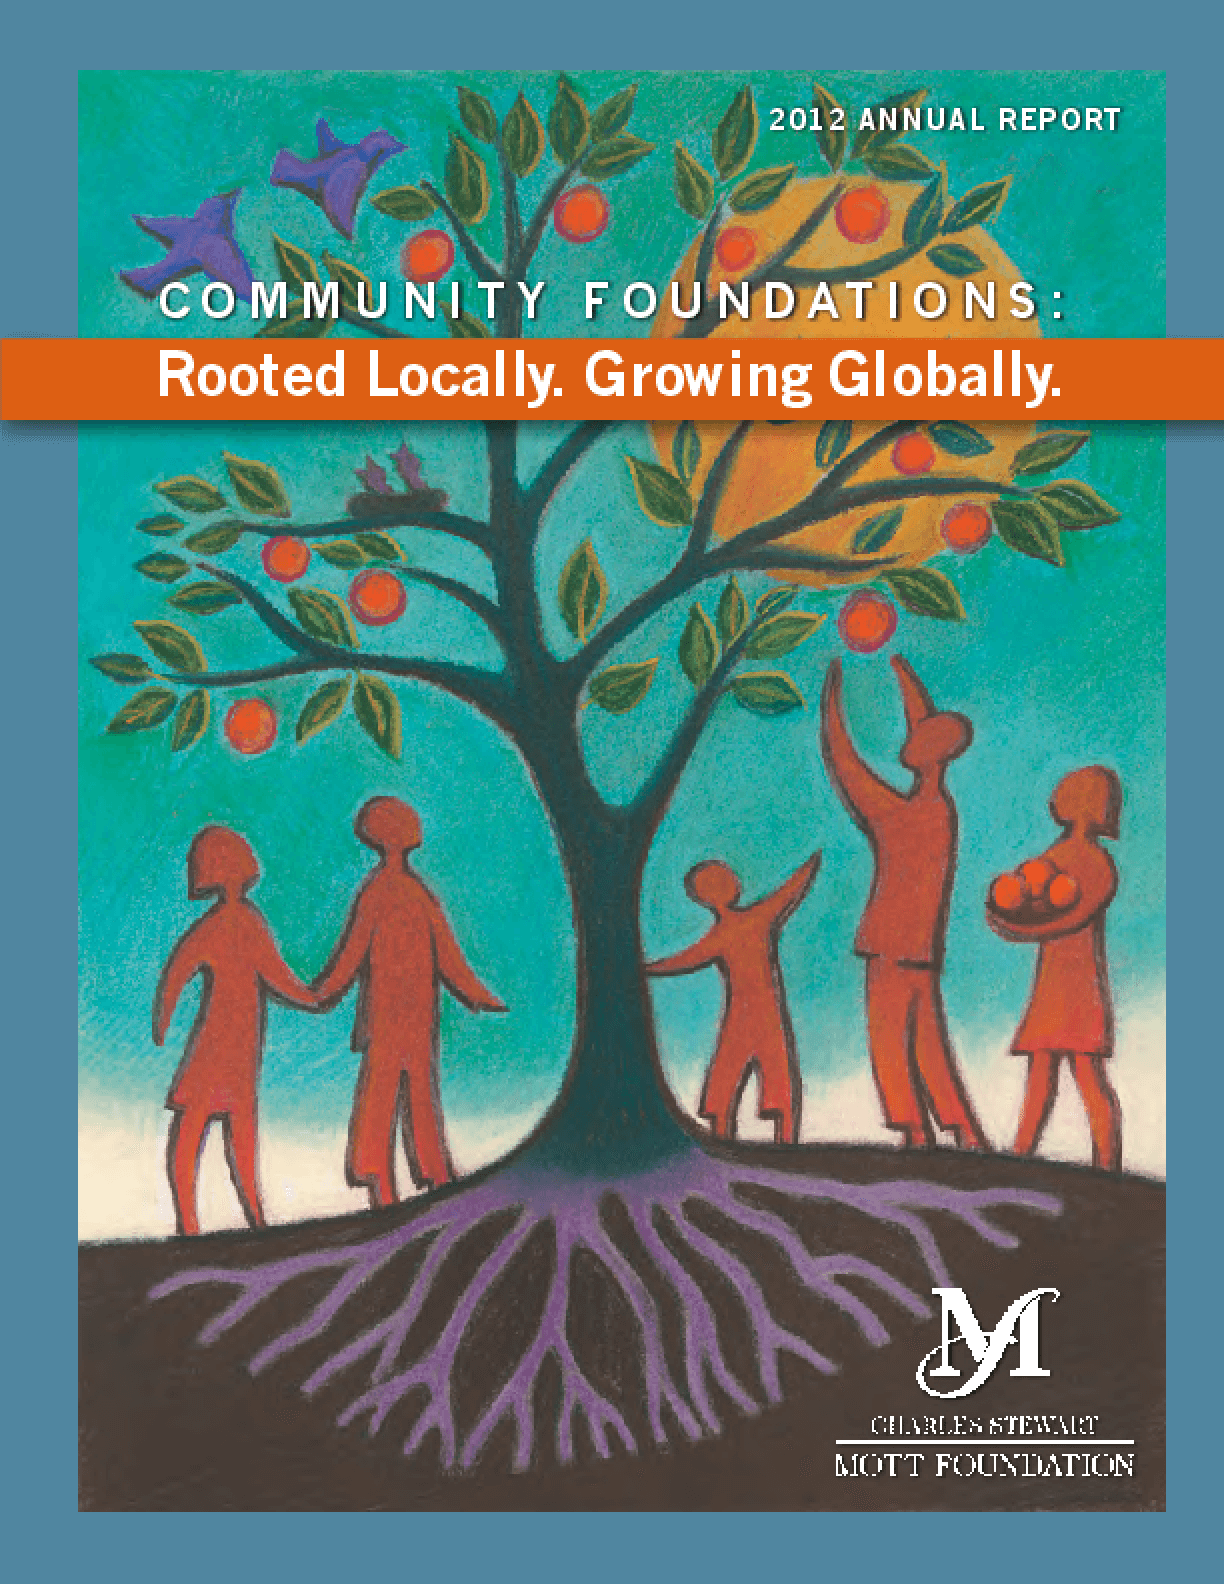 Community Foundations: Rooted Locally, Growing Globally